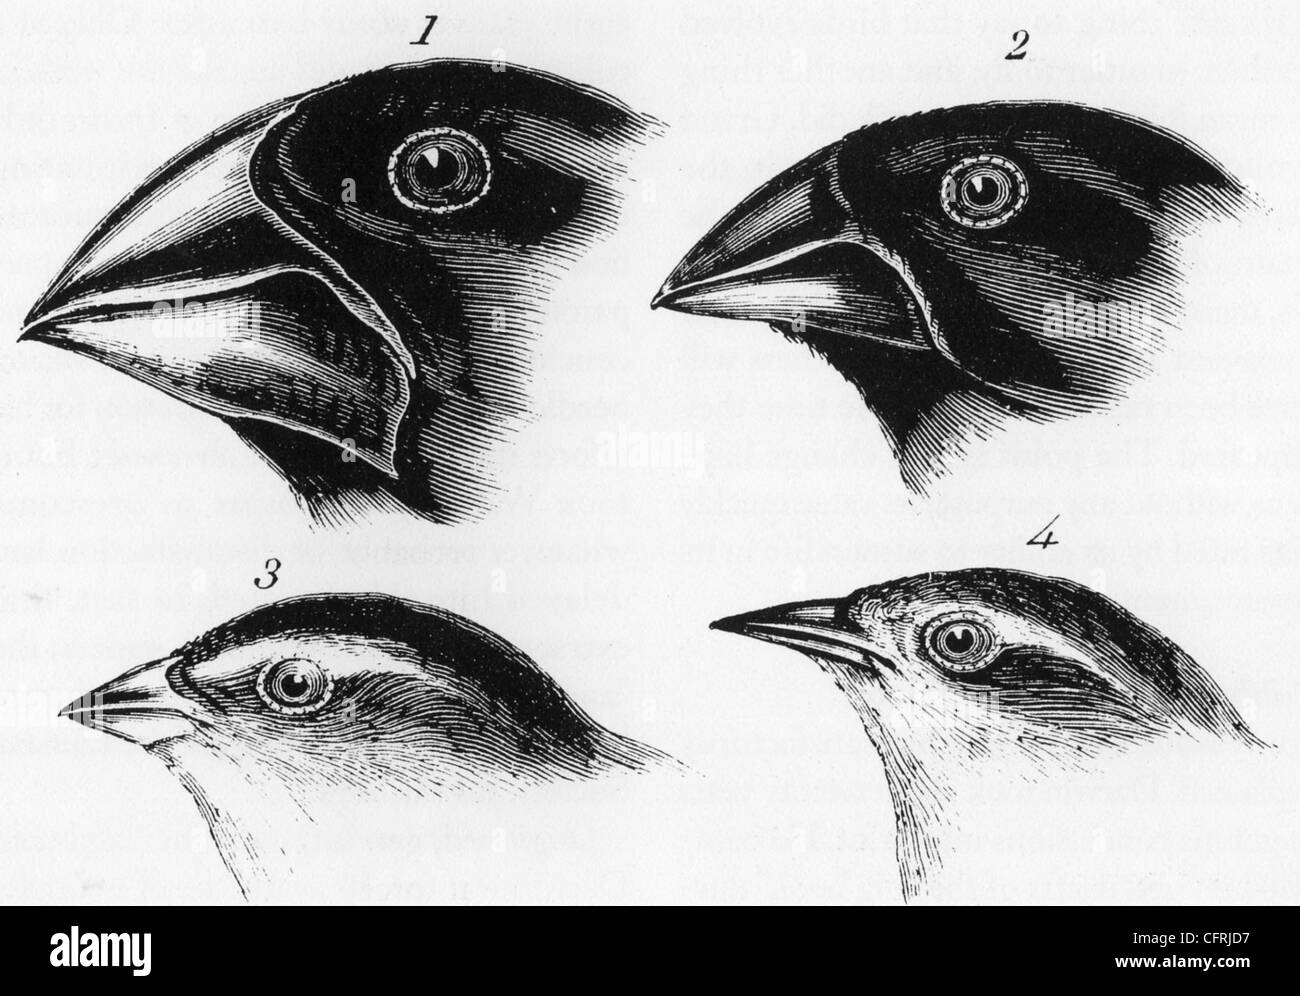 CHARLES DARWIN's FINCHES 1845. See Description below for names - Stock Image